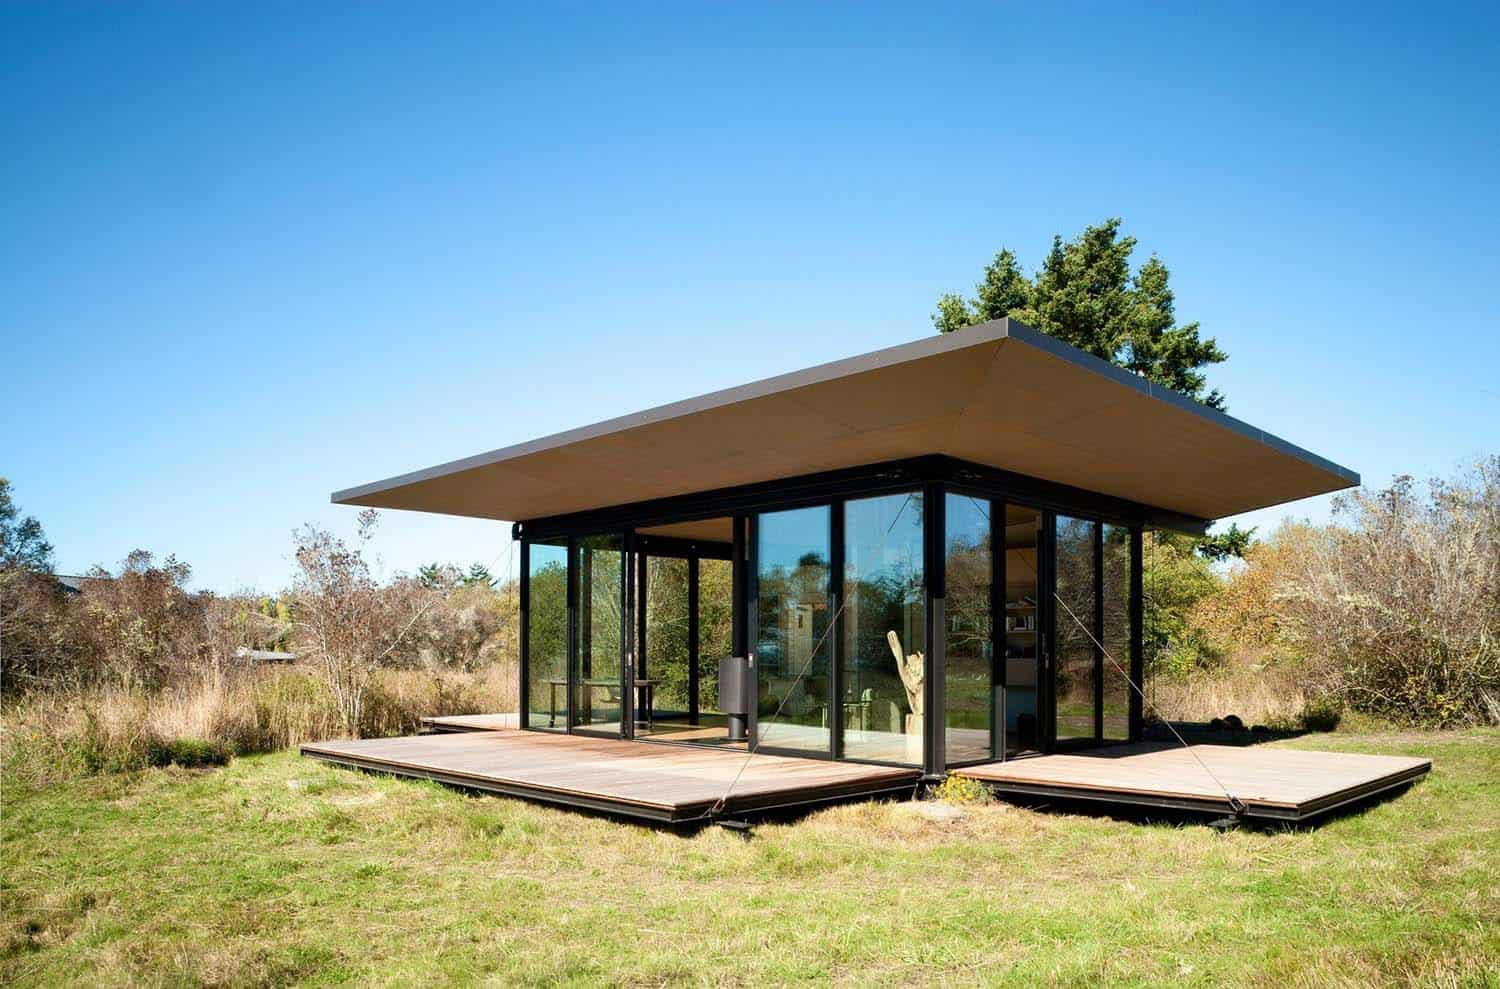 Tiny Modern Cabin-Olson Kundig Architects-07-1 Kindesign